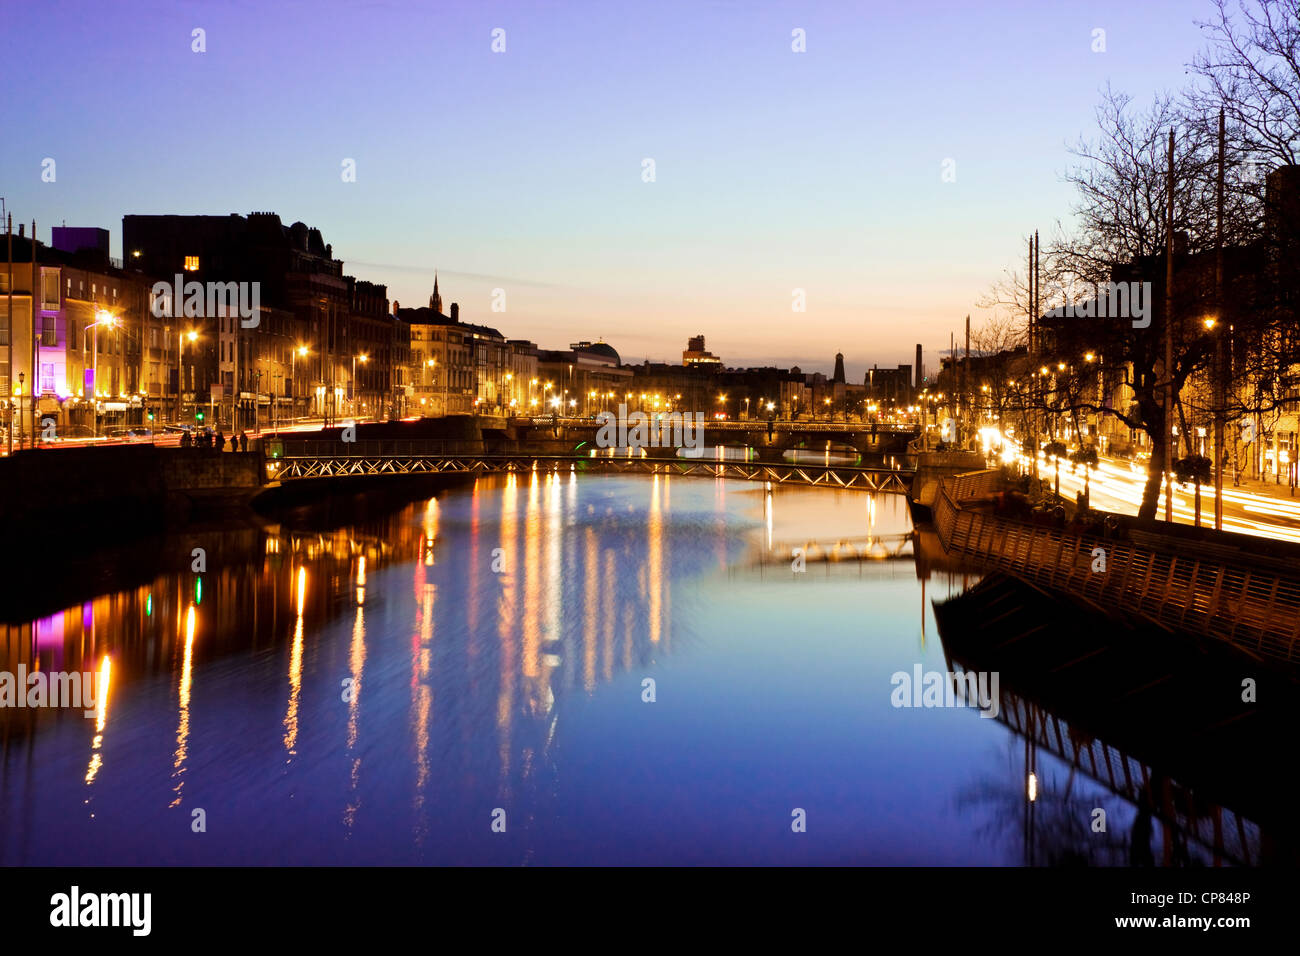 Dublin City at sunset - view over the river Liffey and historical Grattan bridge. Long exposure, tripod used. - Stock Image